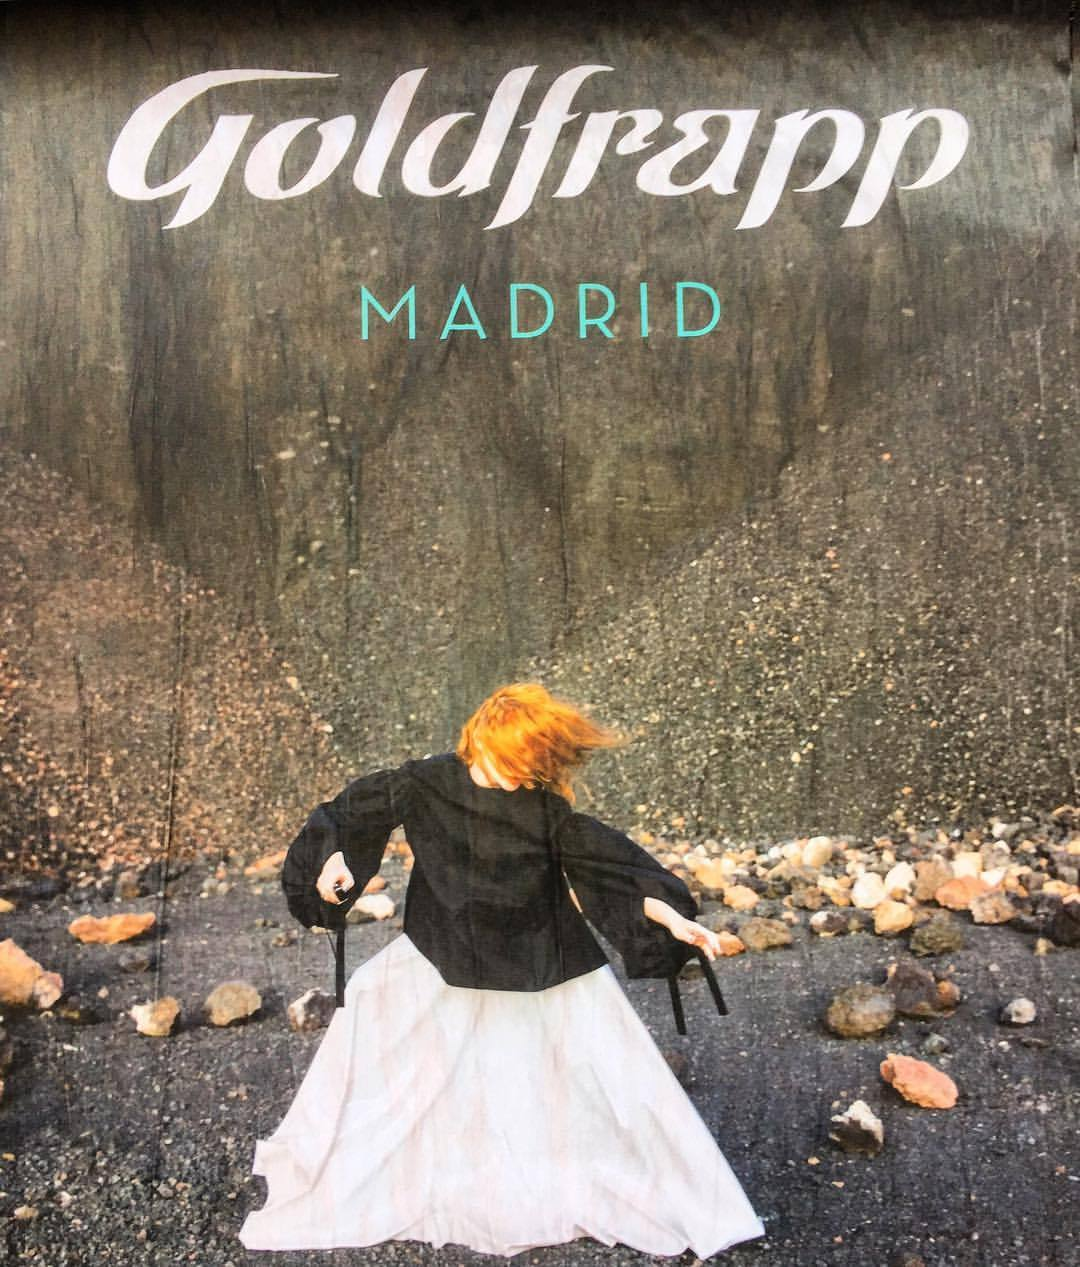 English electronic music in flamenco country.  #spain #madrid #streetart #goldfrapp  (at Puerta del Sol Madrid)